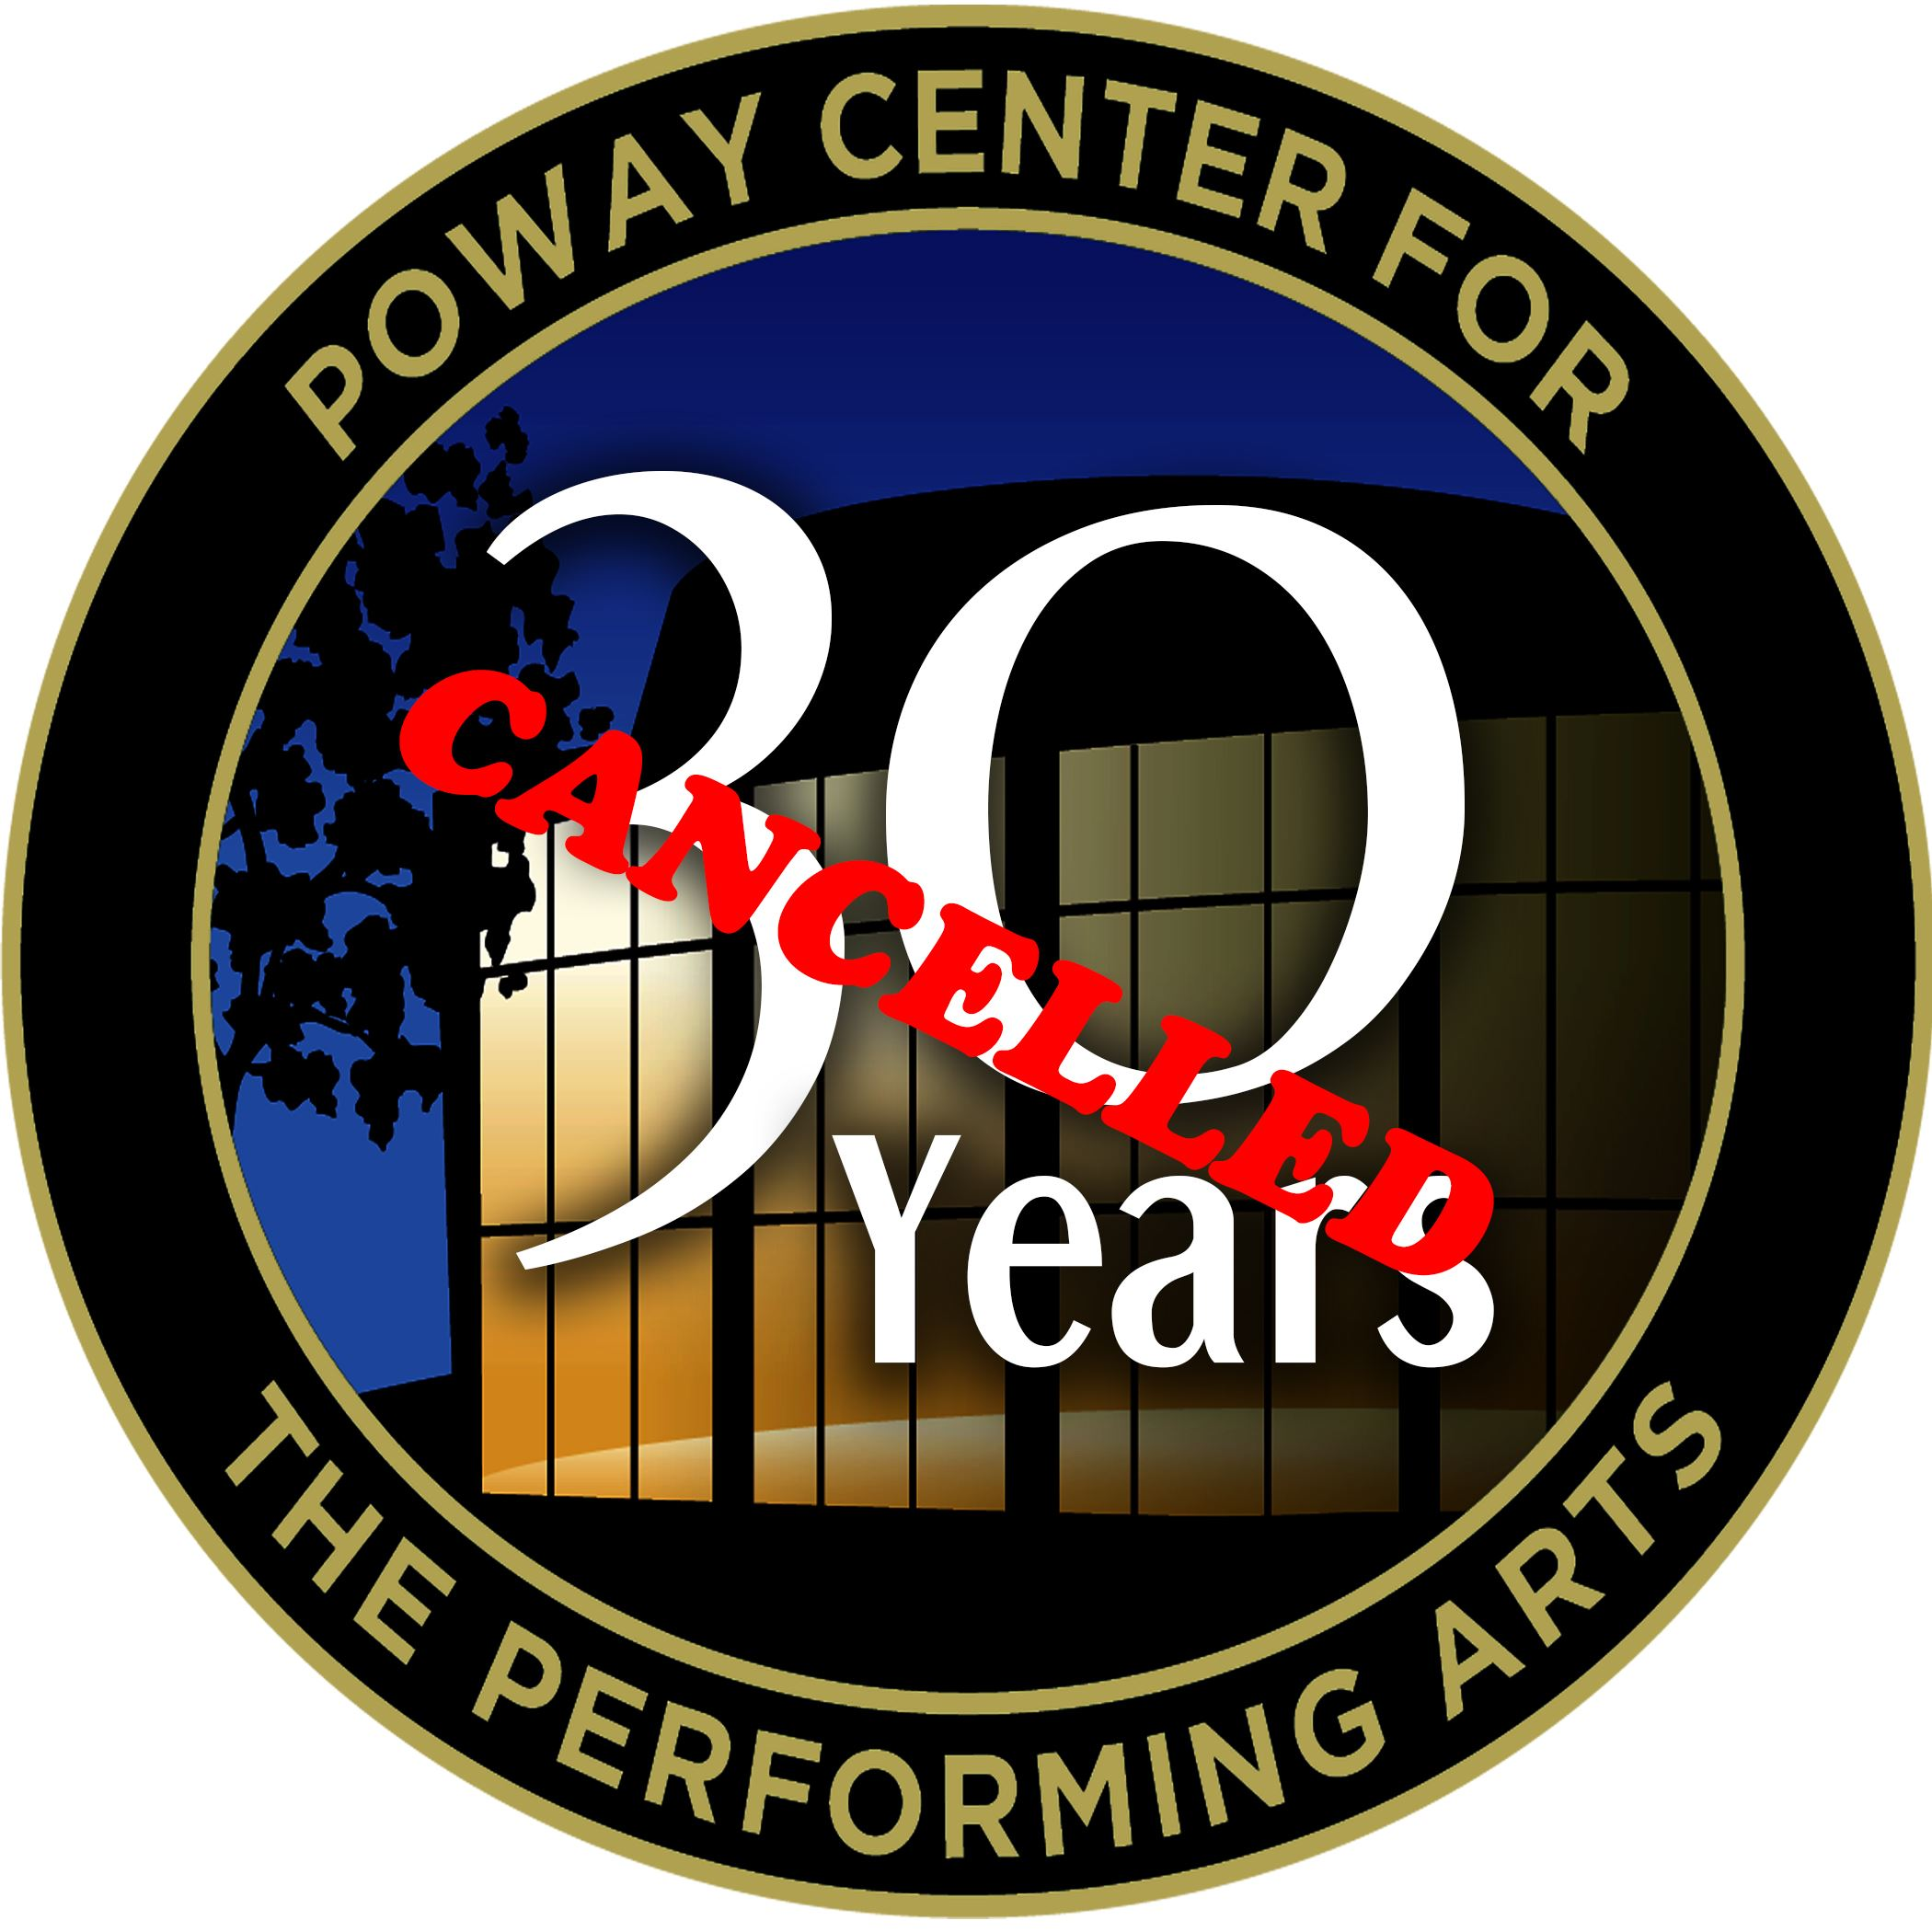 PCPA 30th Anniversary Celebration LogoCANCELLED